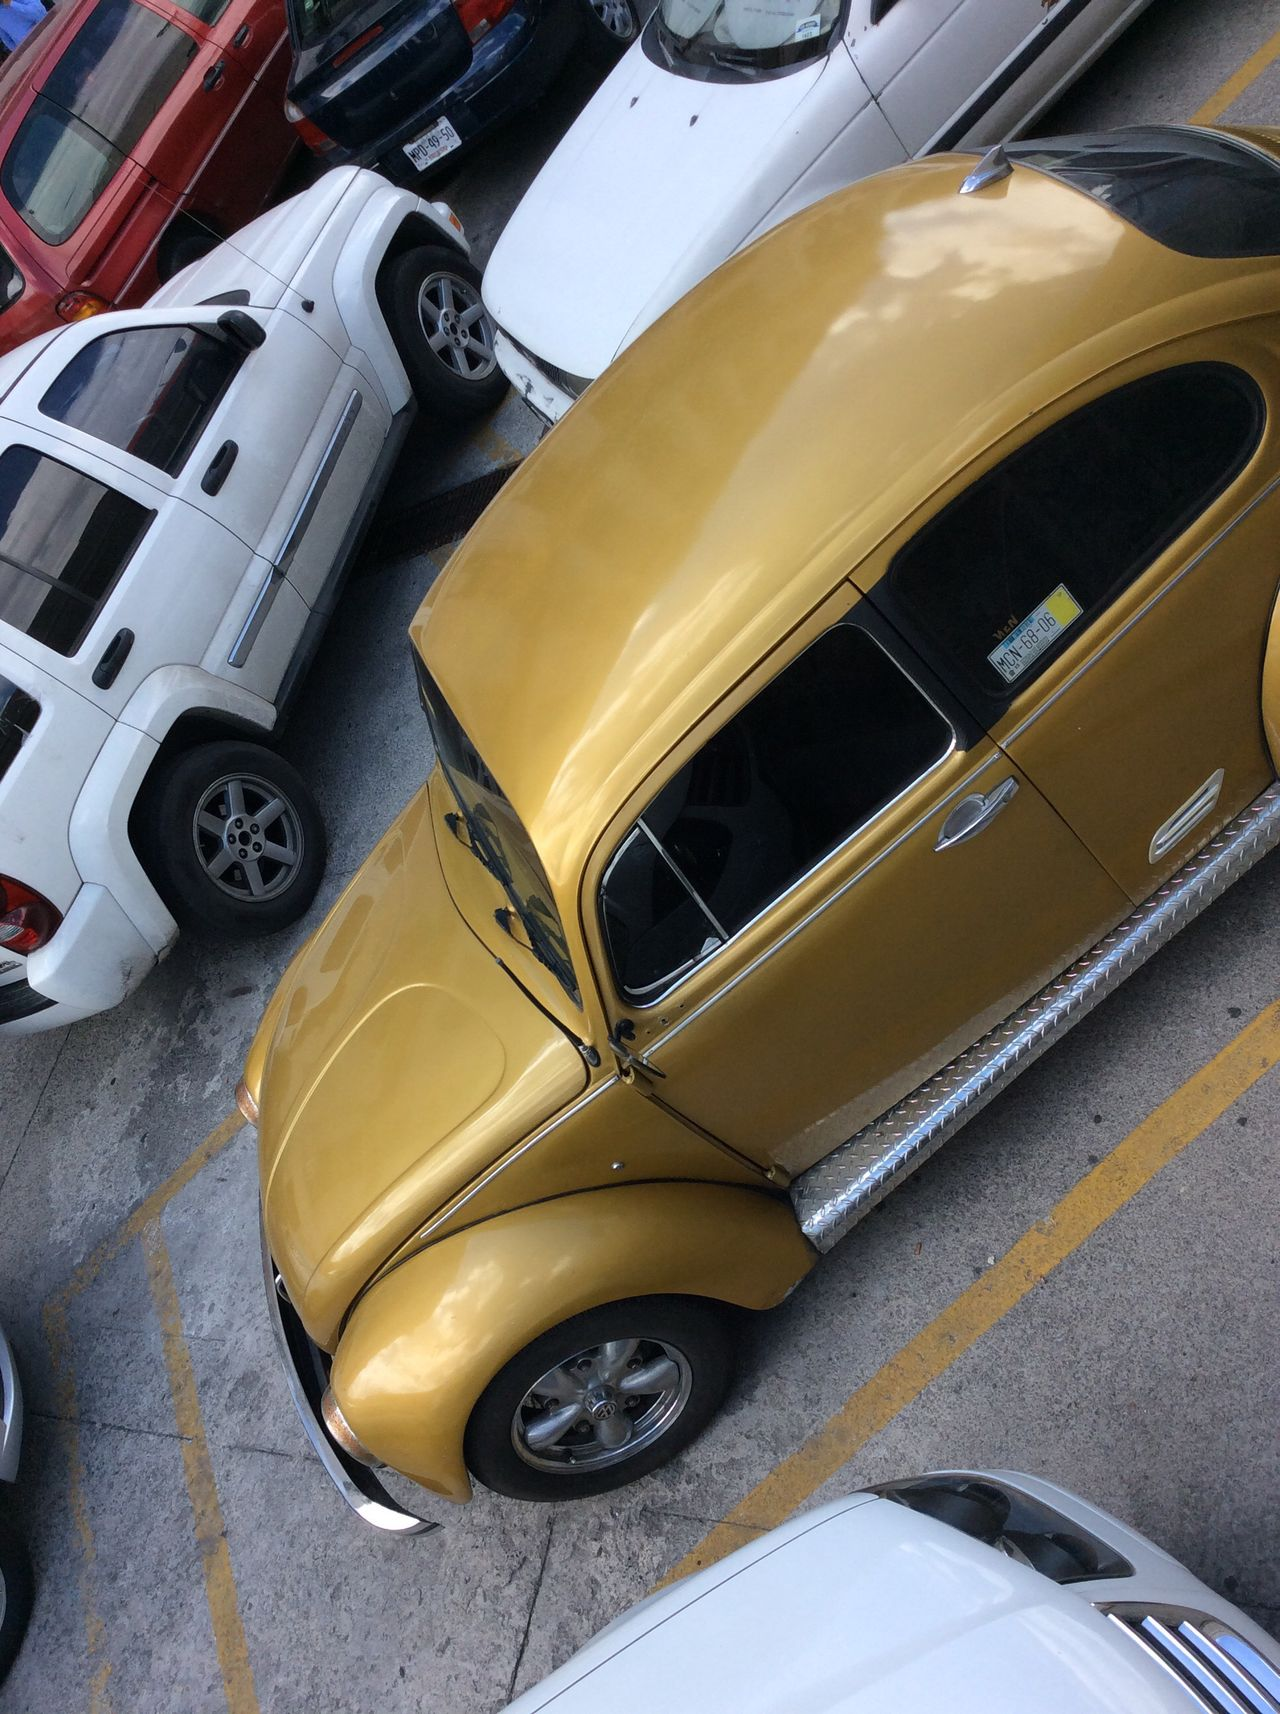 Parked cars Ipadphotography Gold Beetle Car high up looking down Mexico City Cars Parked Close Together Hilalgo Juarez Bellas Artes Transportation Day Wheel IPad Mini No People Autumn High Angle View EyeEm Best Shots